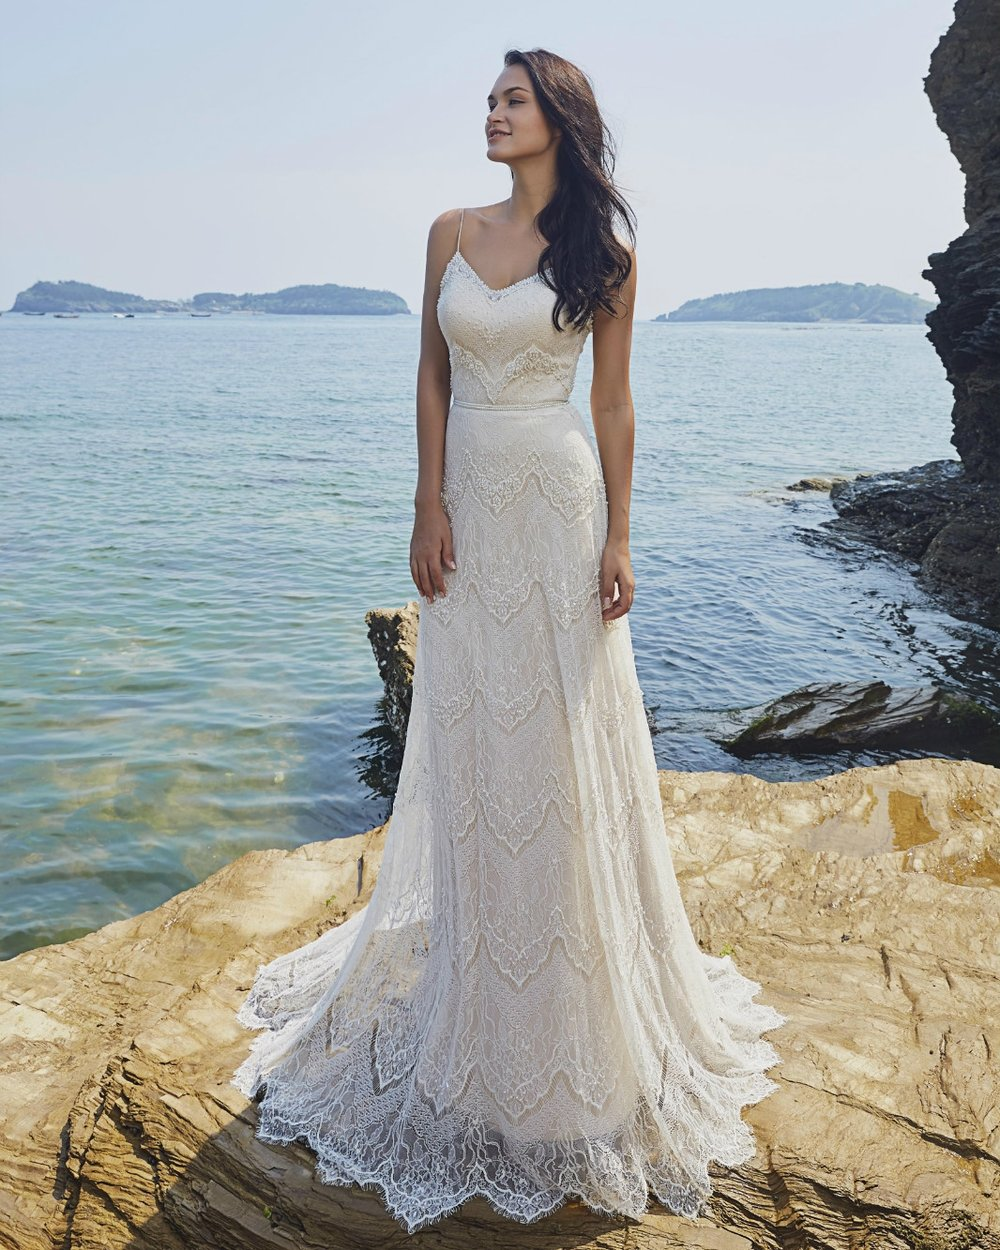 STYLIST FAVORITE - This lovely gown is crafted from all over lace adorned with hand sewn pearls. The intricately formed and repeating pattern of crests, florals and eye lash edging give this all over lace an eye catching vintage vibe. The open lace back and delicate spaghetti straps add subtle sexy touches.